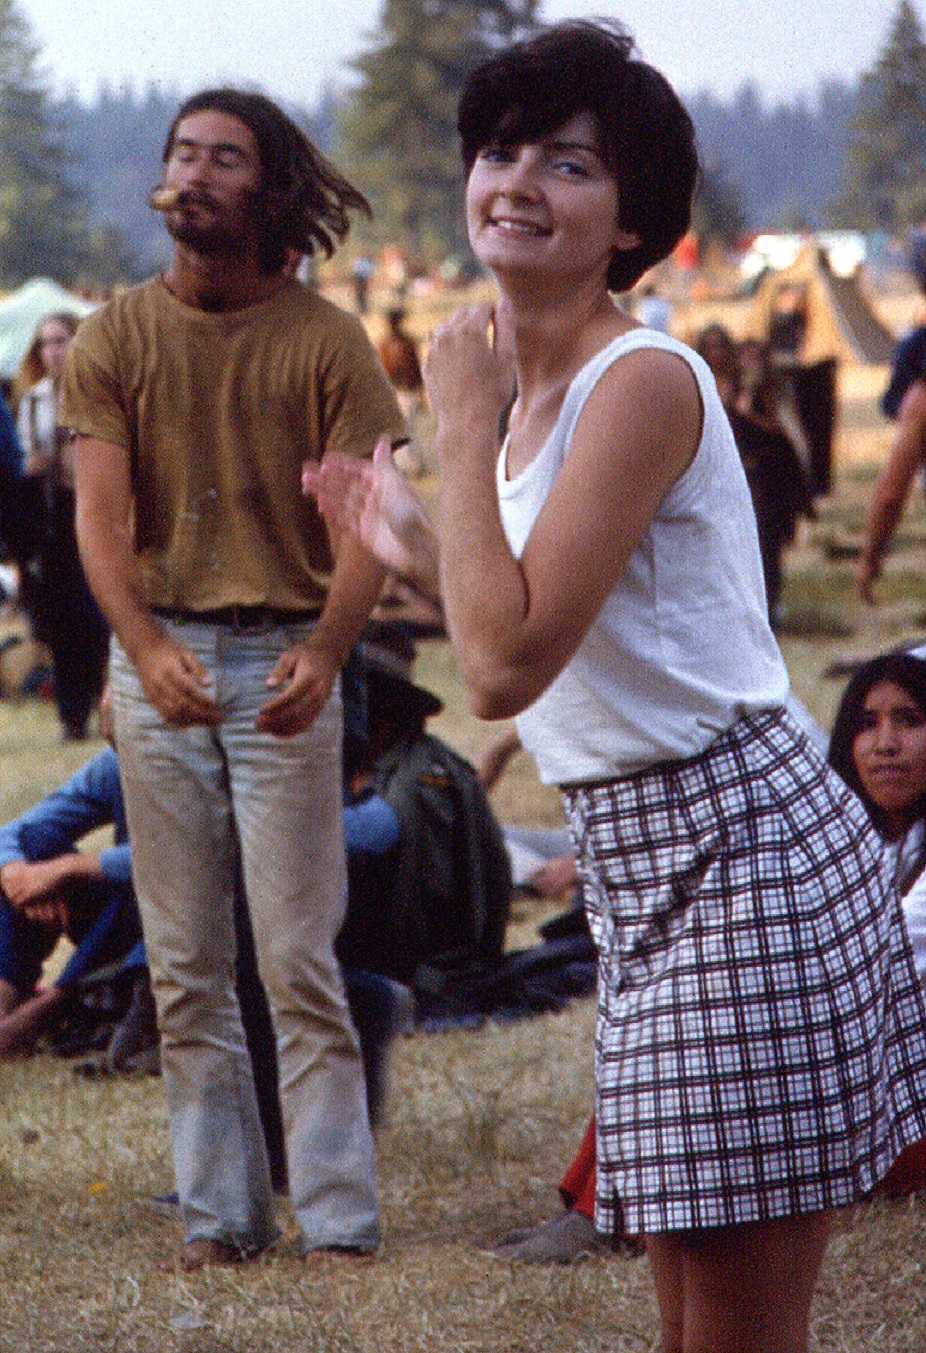 Girl & Dude Dancing to the Music - Vortex 1 - 1970 - McIver State Park